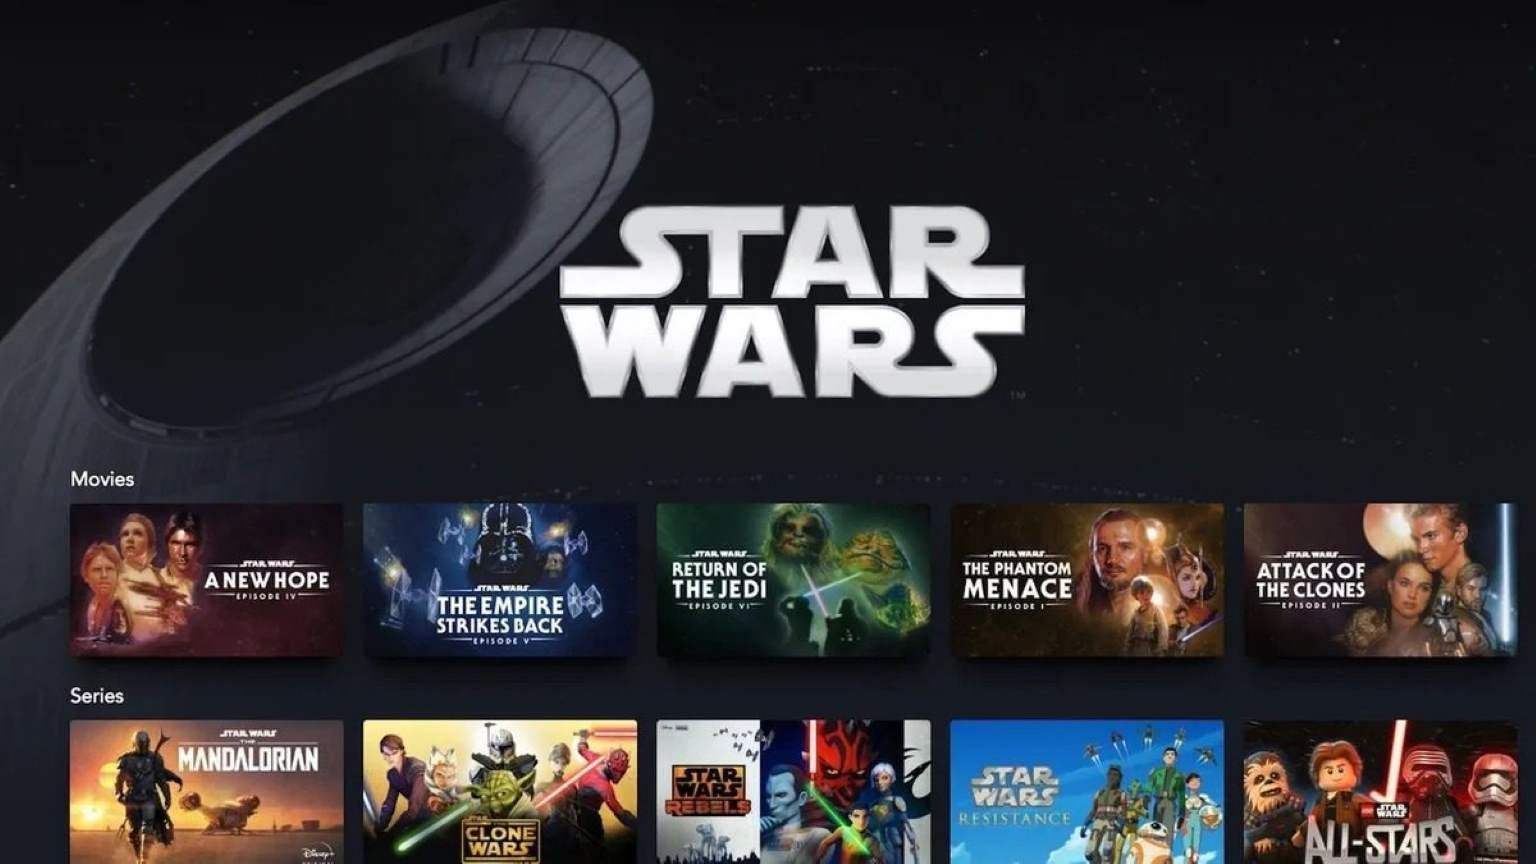 Full list of Star Wars content